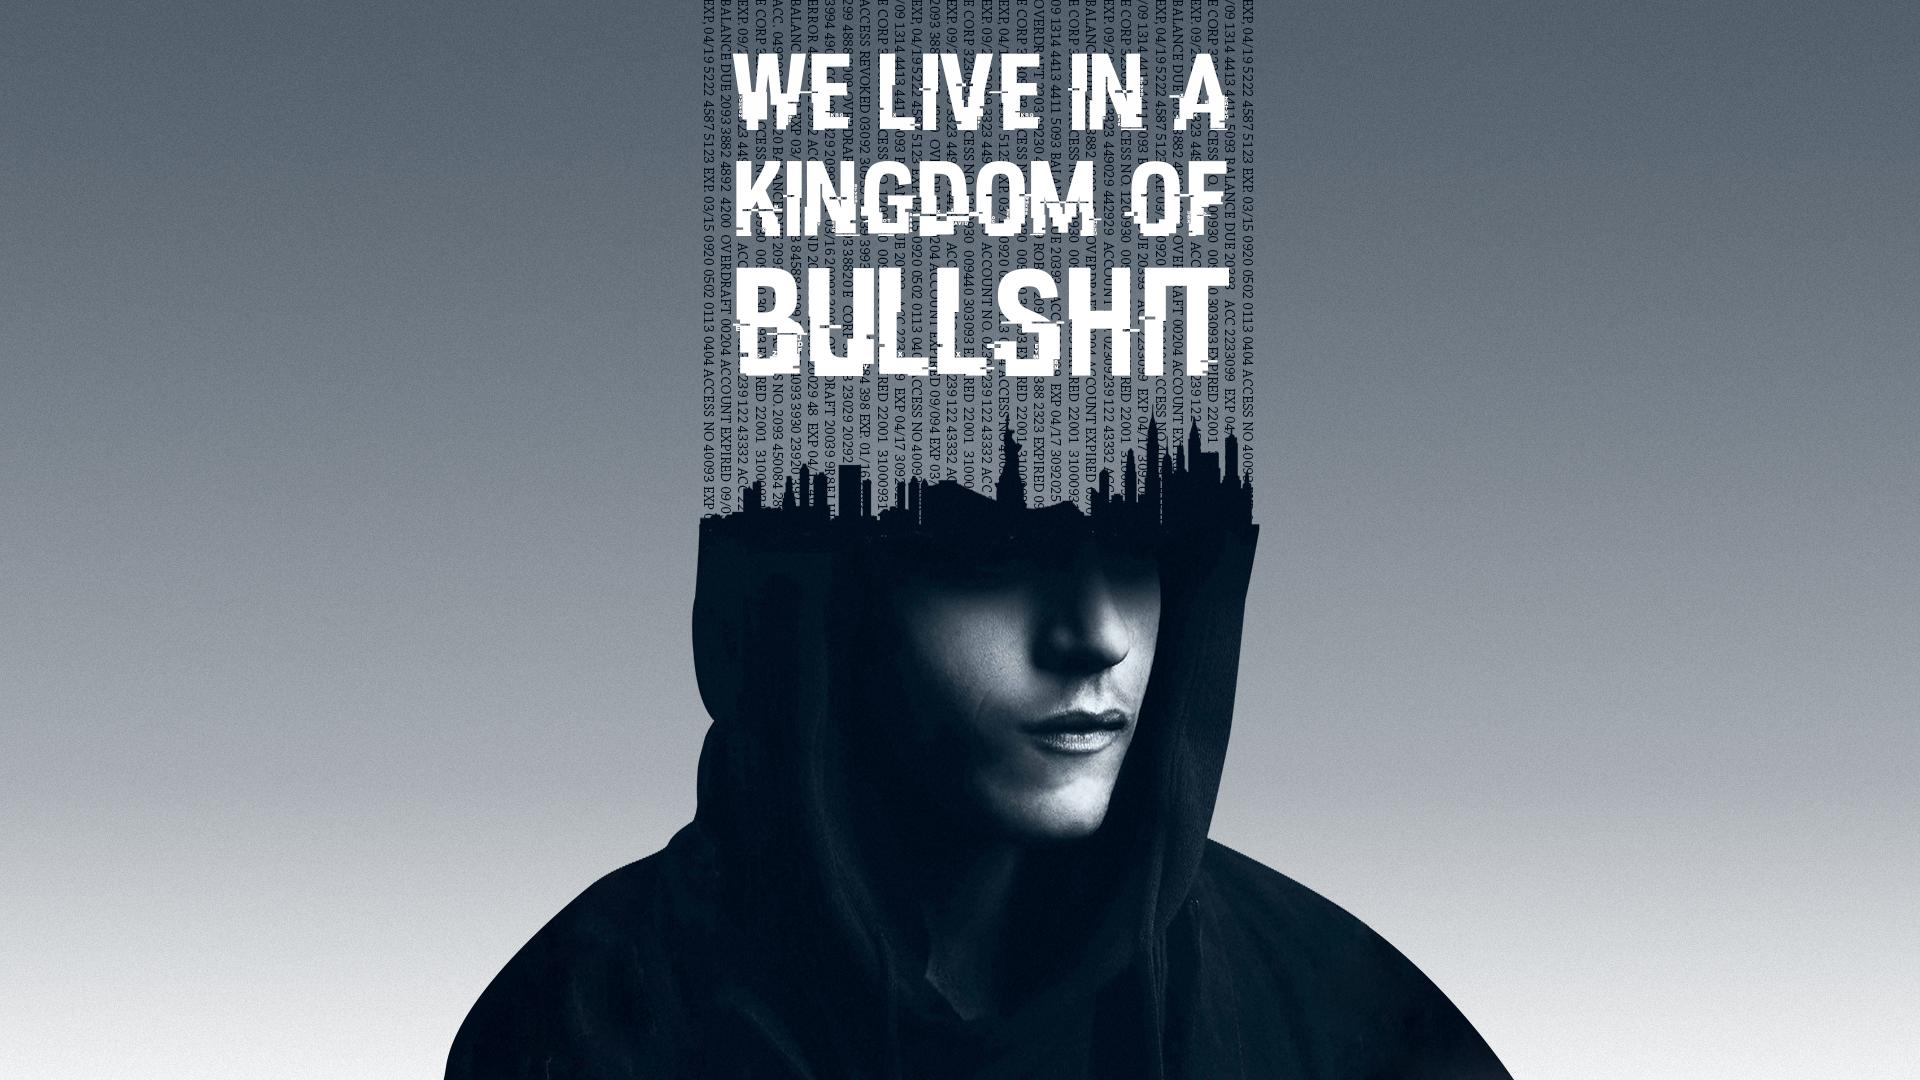 Mr Robot Quote Hd Tv Shows 4k Wallpapers Images